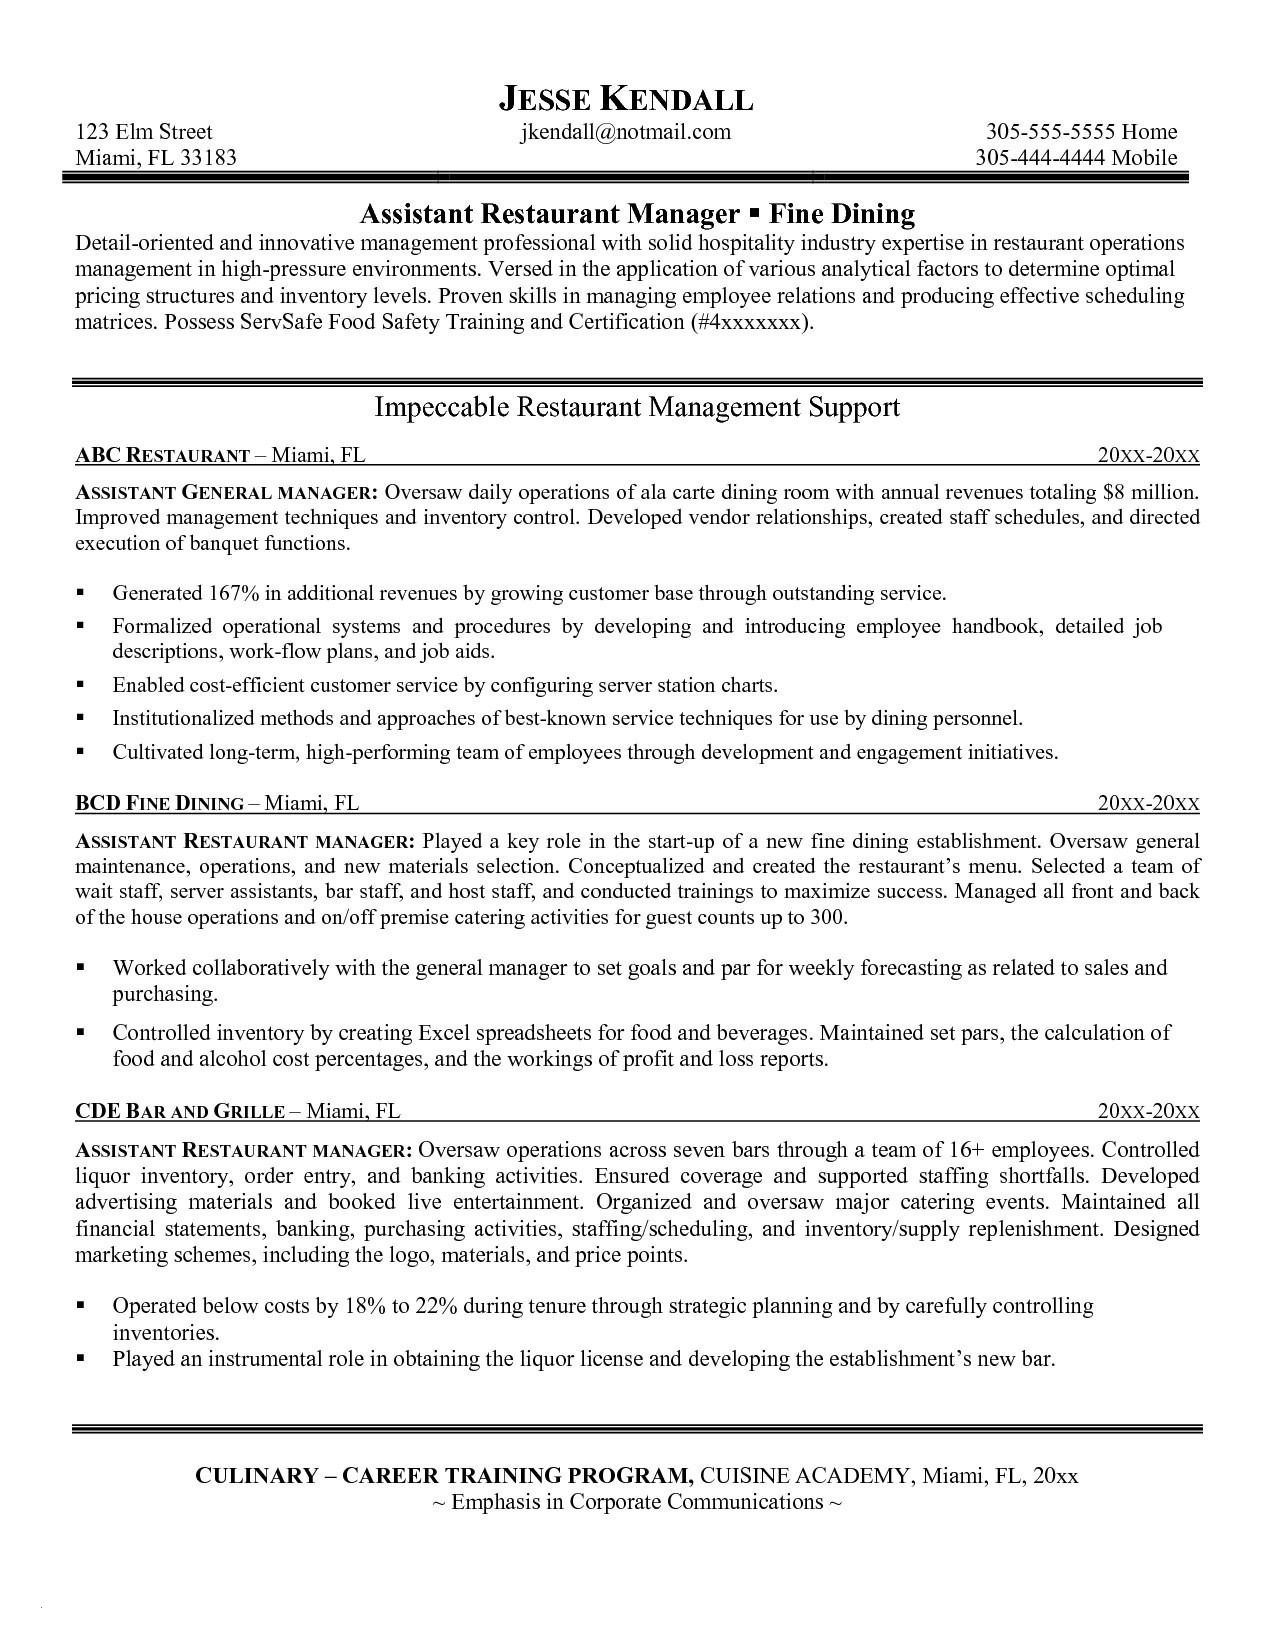 Team Lead Job Description Resume - Restaurant General Manager Resume Paragraphrewriter